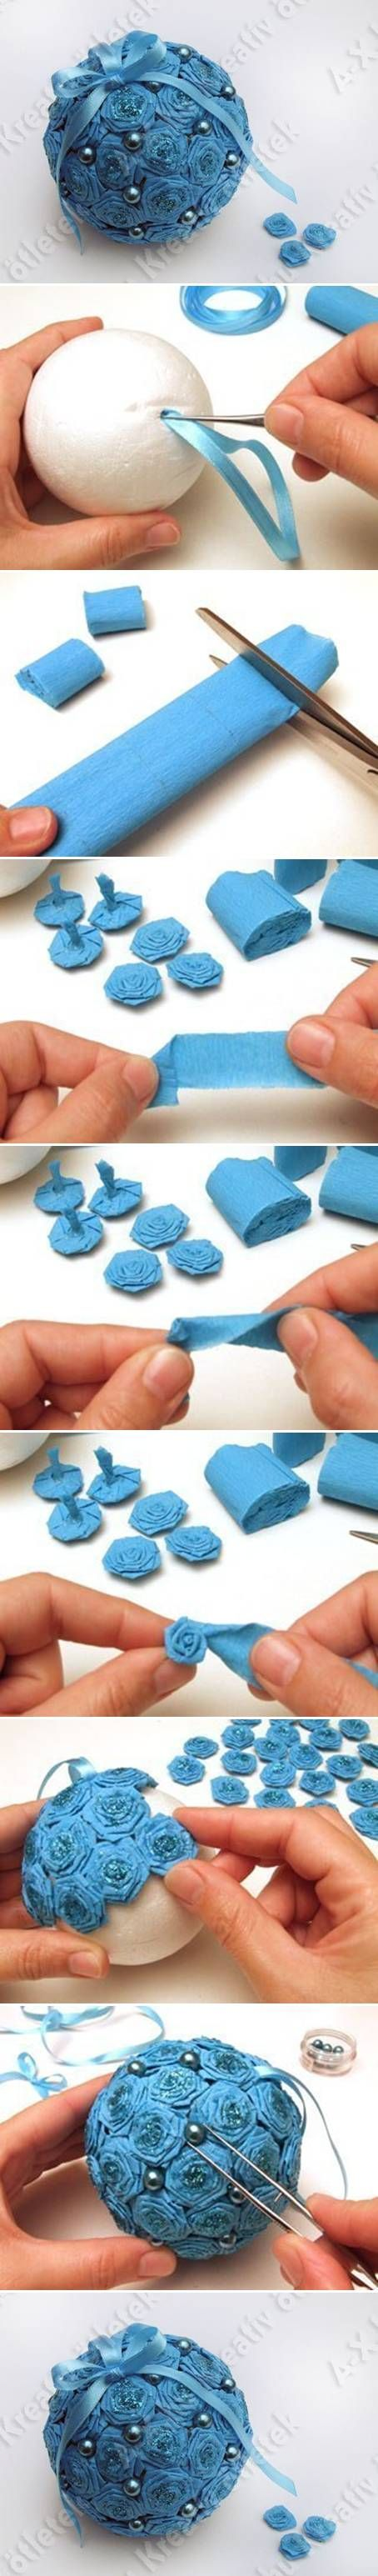 Small flowers for crafts - Diy Crepe Paper Flower Ball